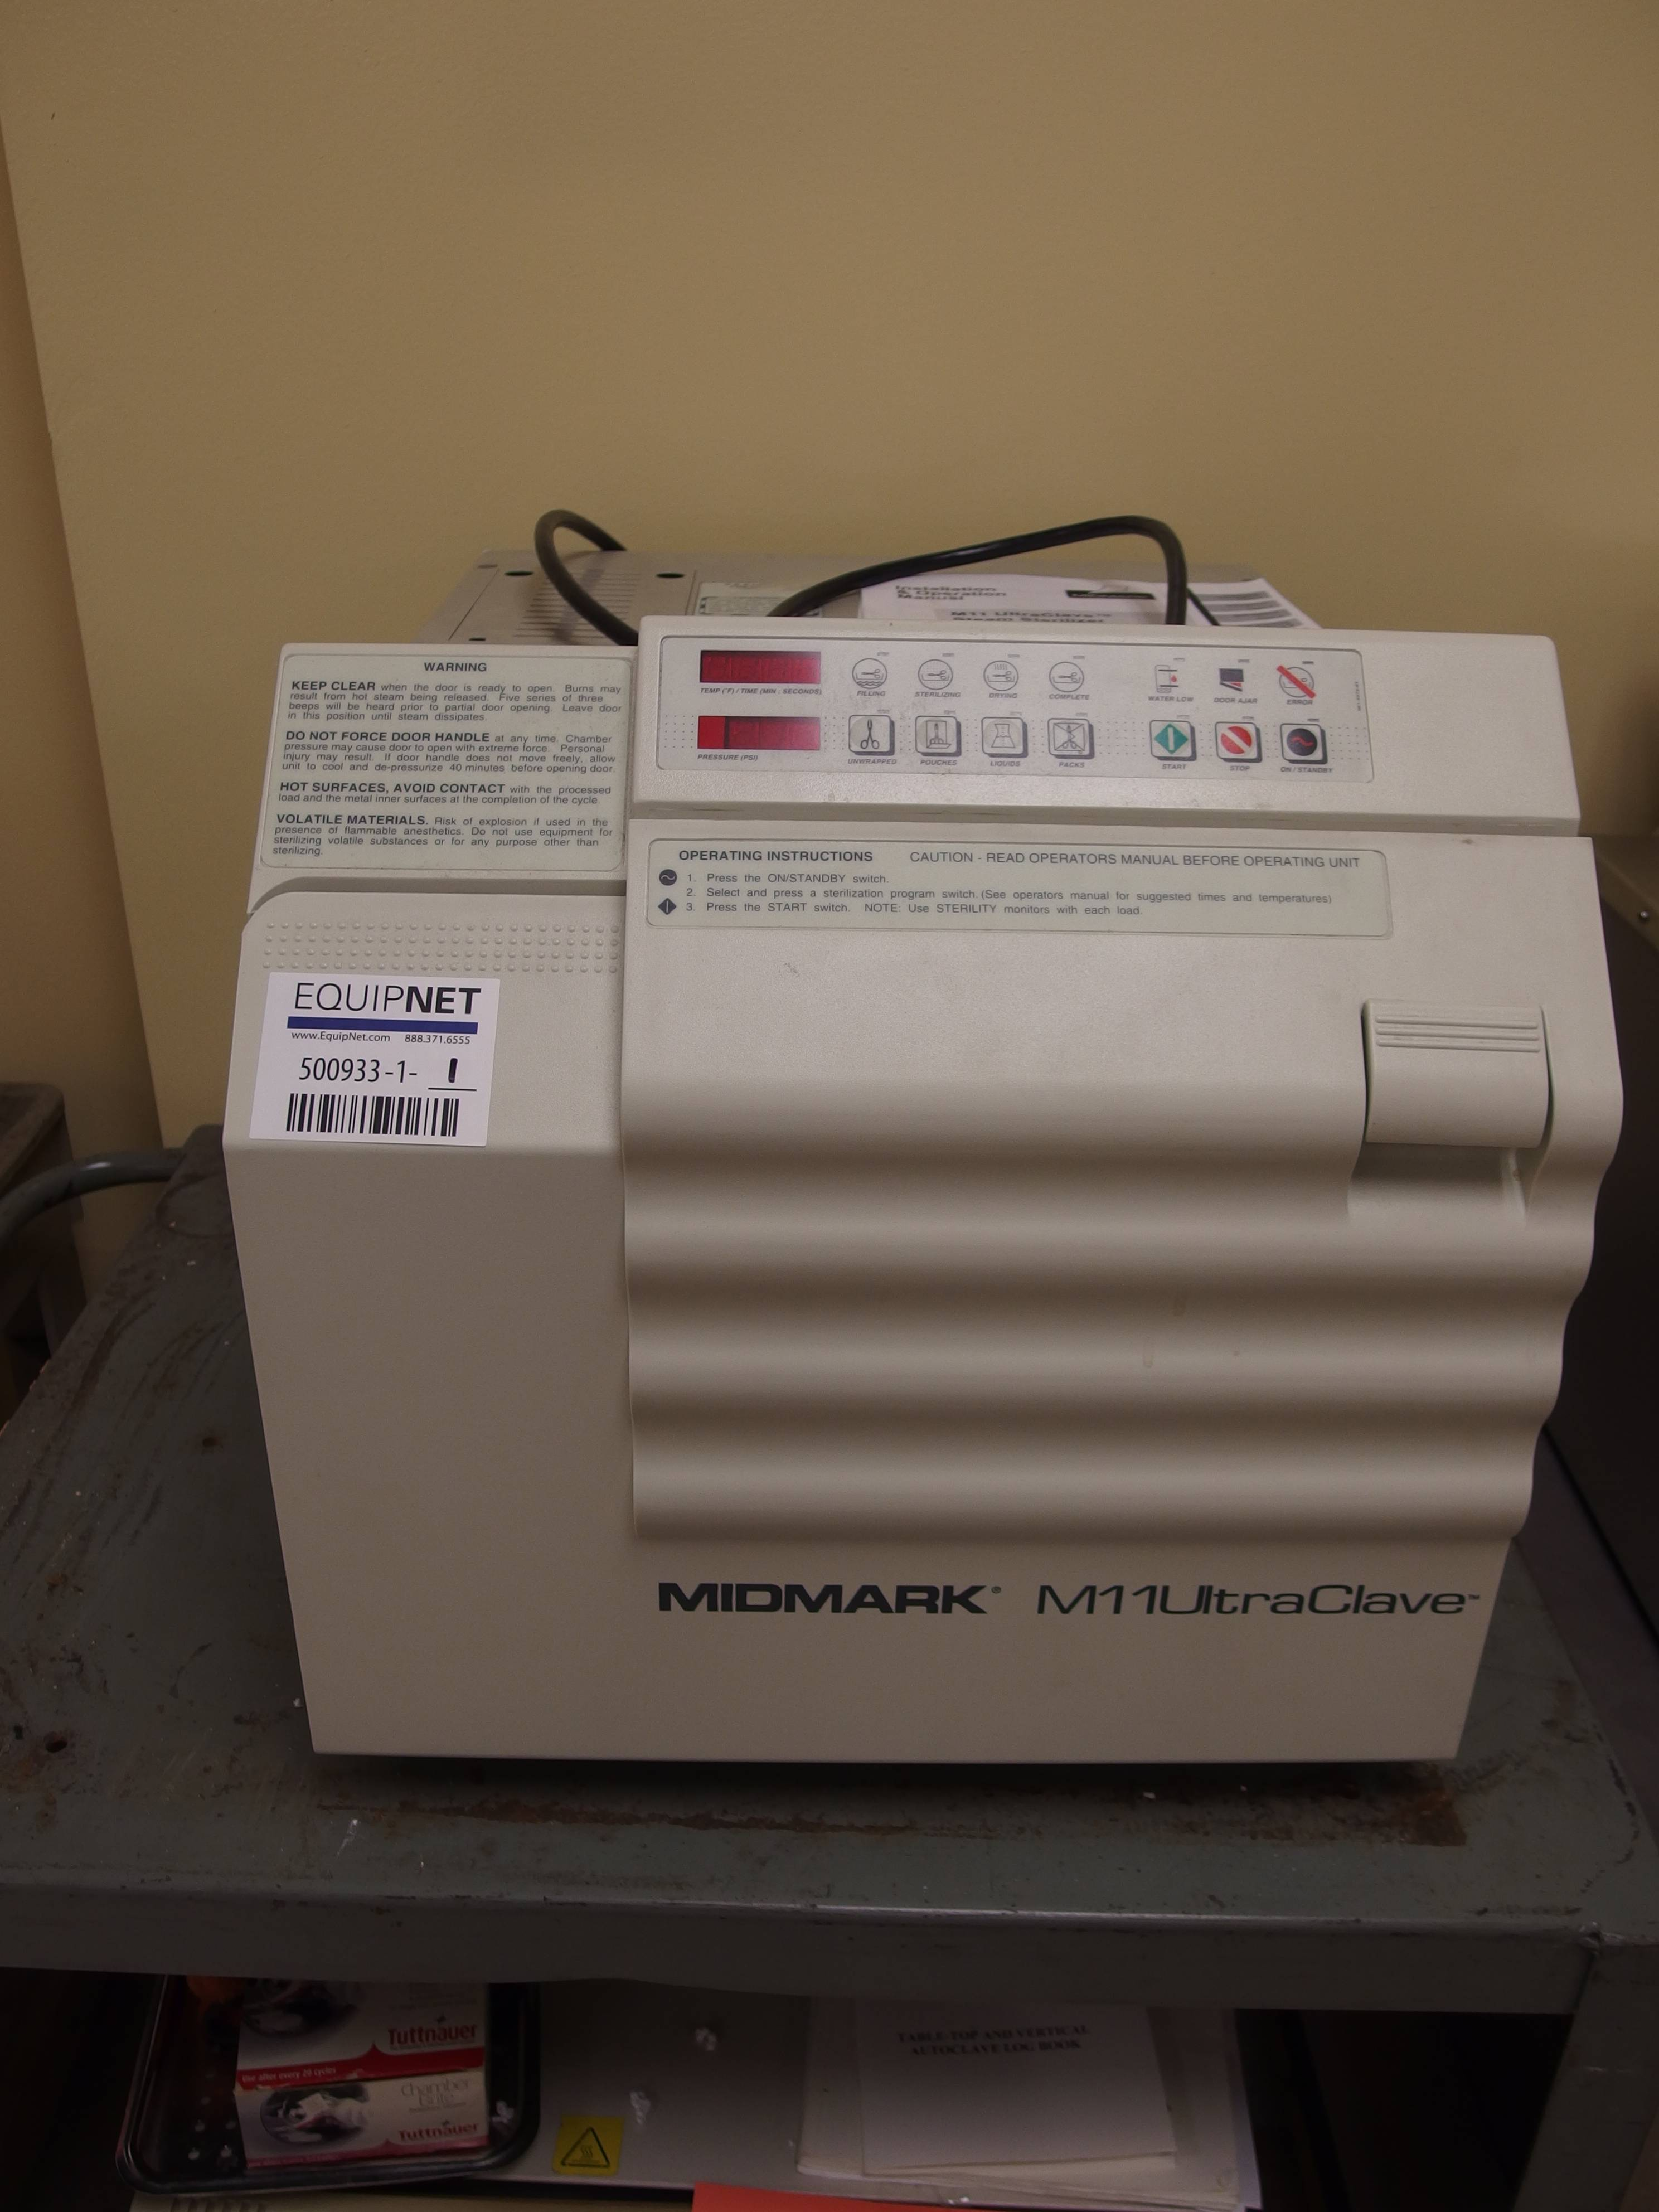 midmark autoclave m11 wiring diagram midmark m11 autoclave user manual midmark m11 ultraclave instruction manual